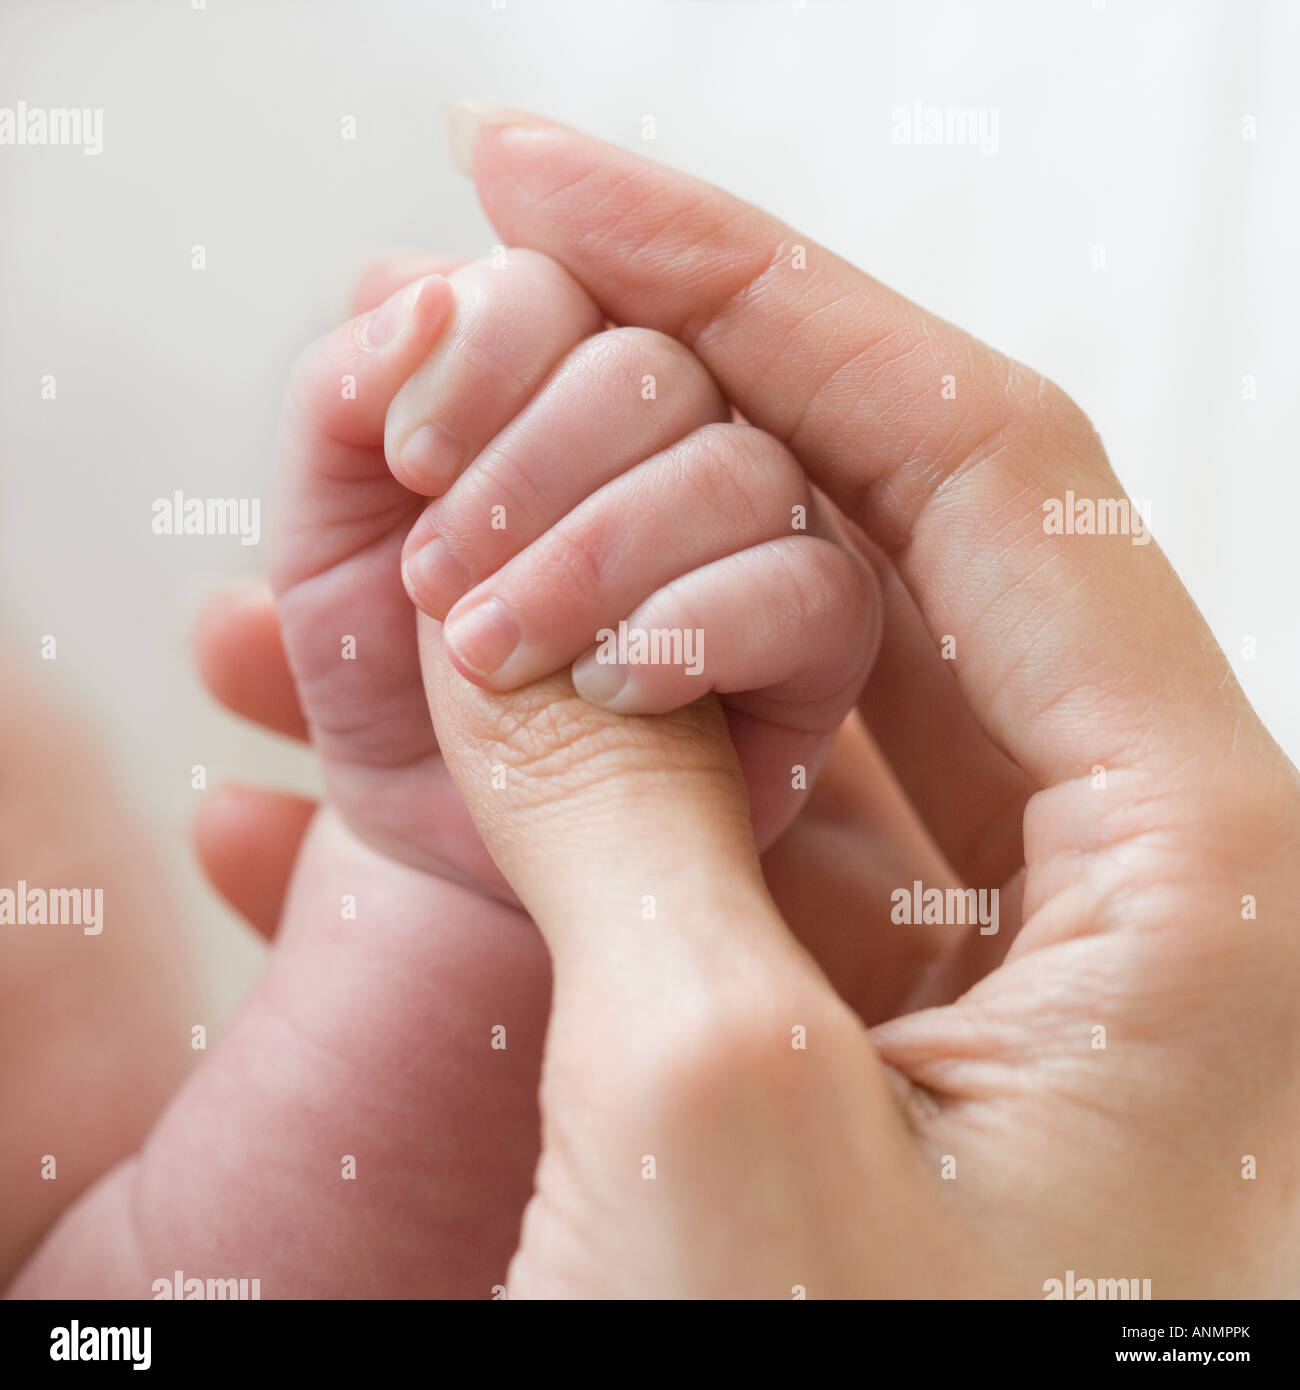 Close up of mother holding baby's hand - Stock Image